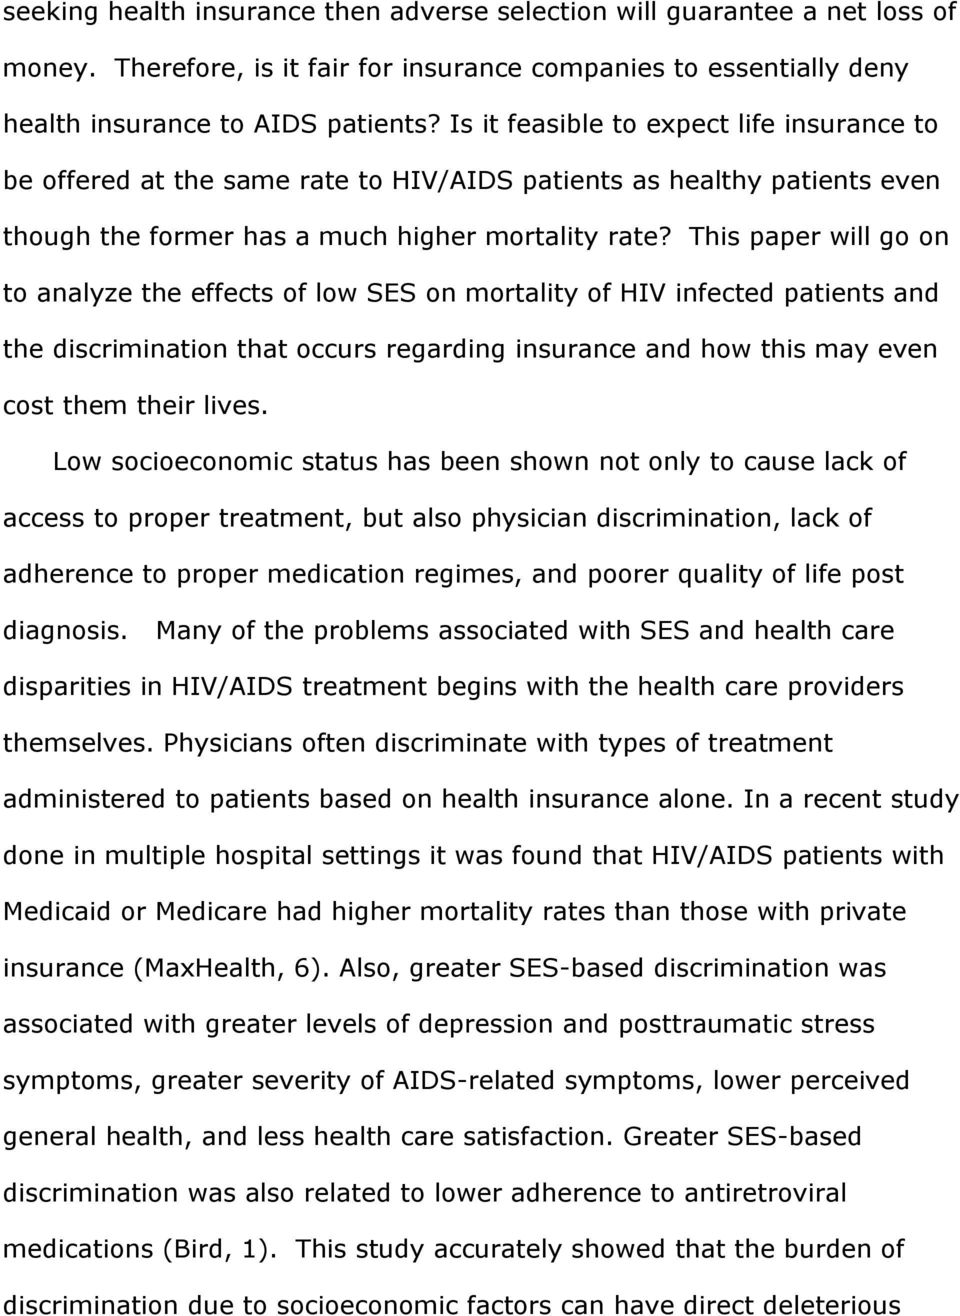 This paper will go on to analyze the effects of low SES on mortality of HIV infected patients and the discrimination that occurs regarding insurance and how this may even cost them their lives.